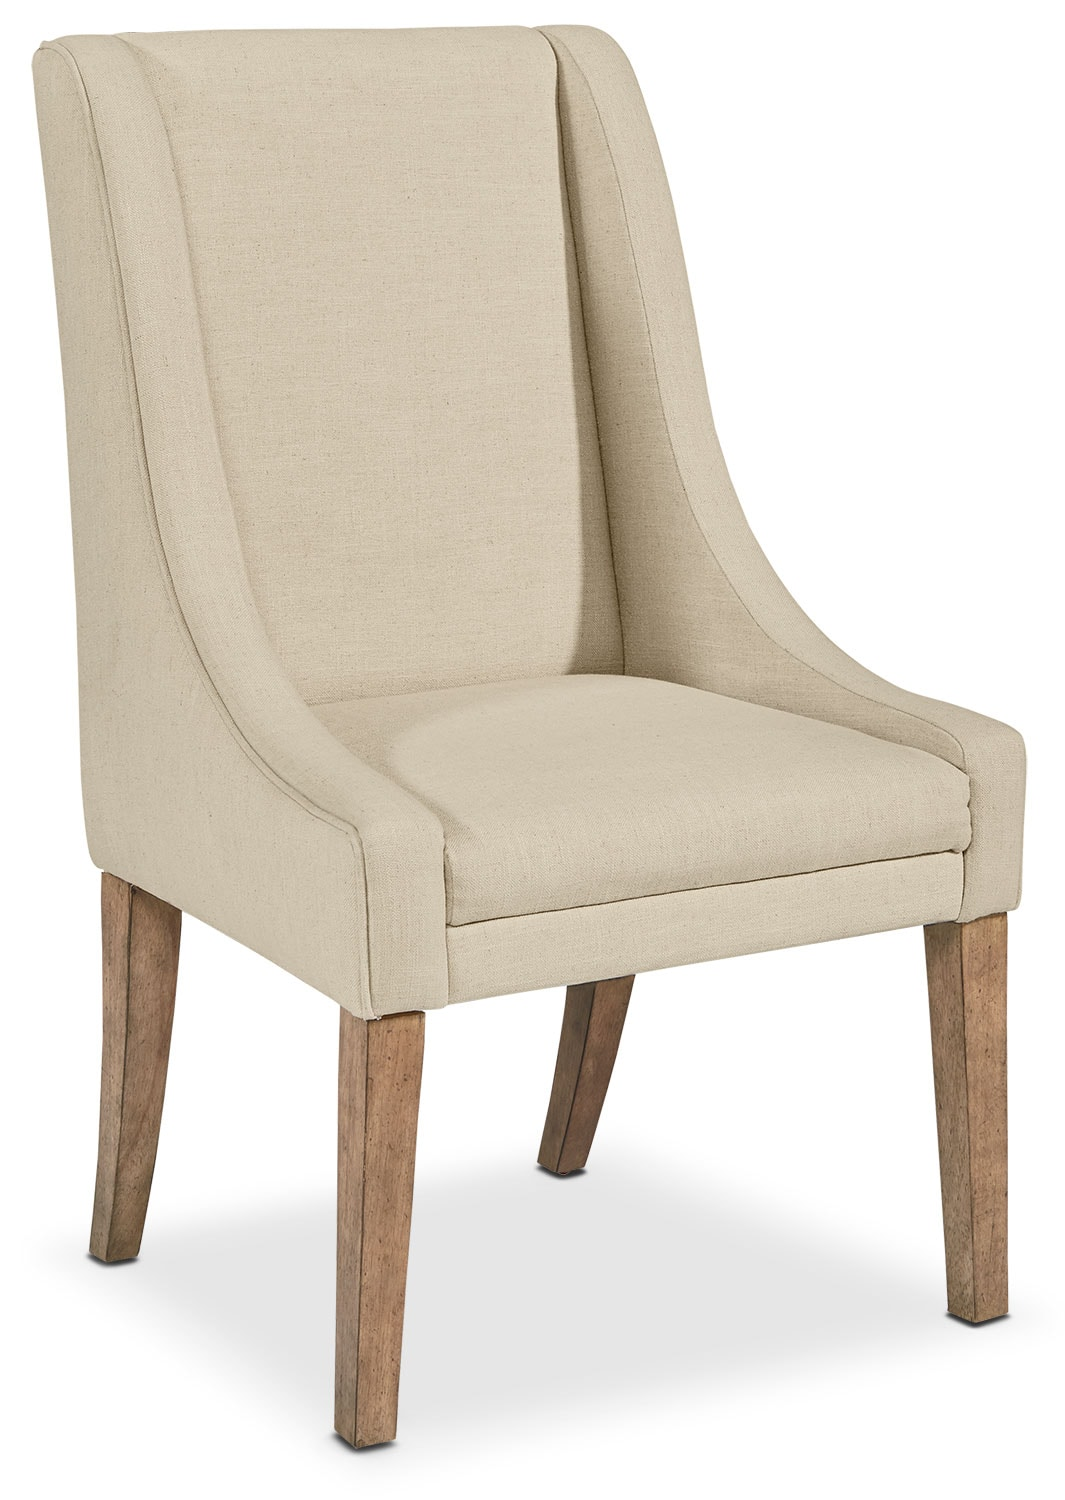 Dining Room Furniture - French Demi-Wing Upholstered Side Chair - Linen